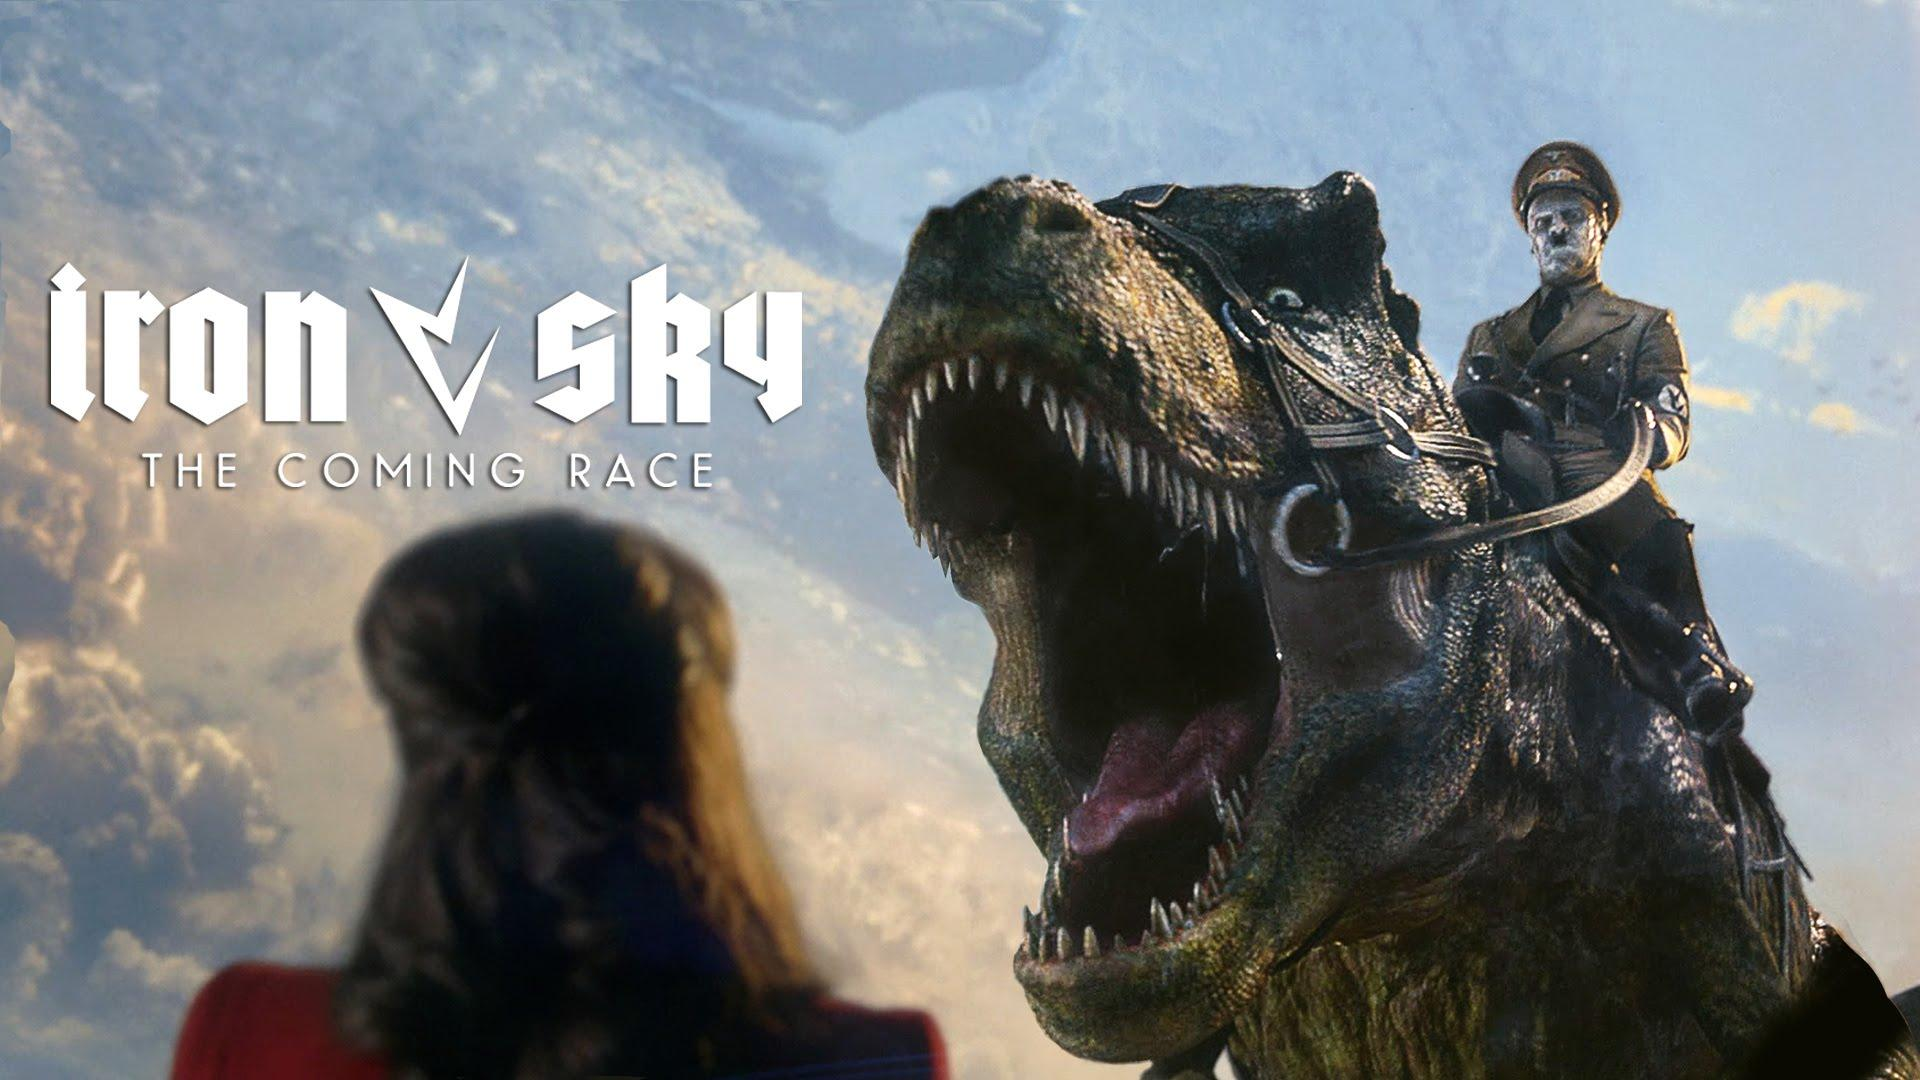 Iron Sky The Coming Race Promo